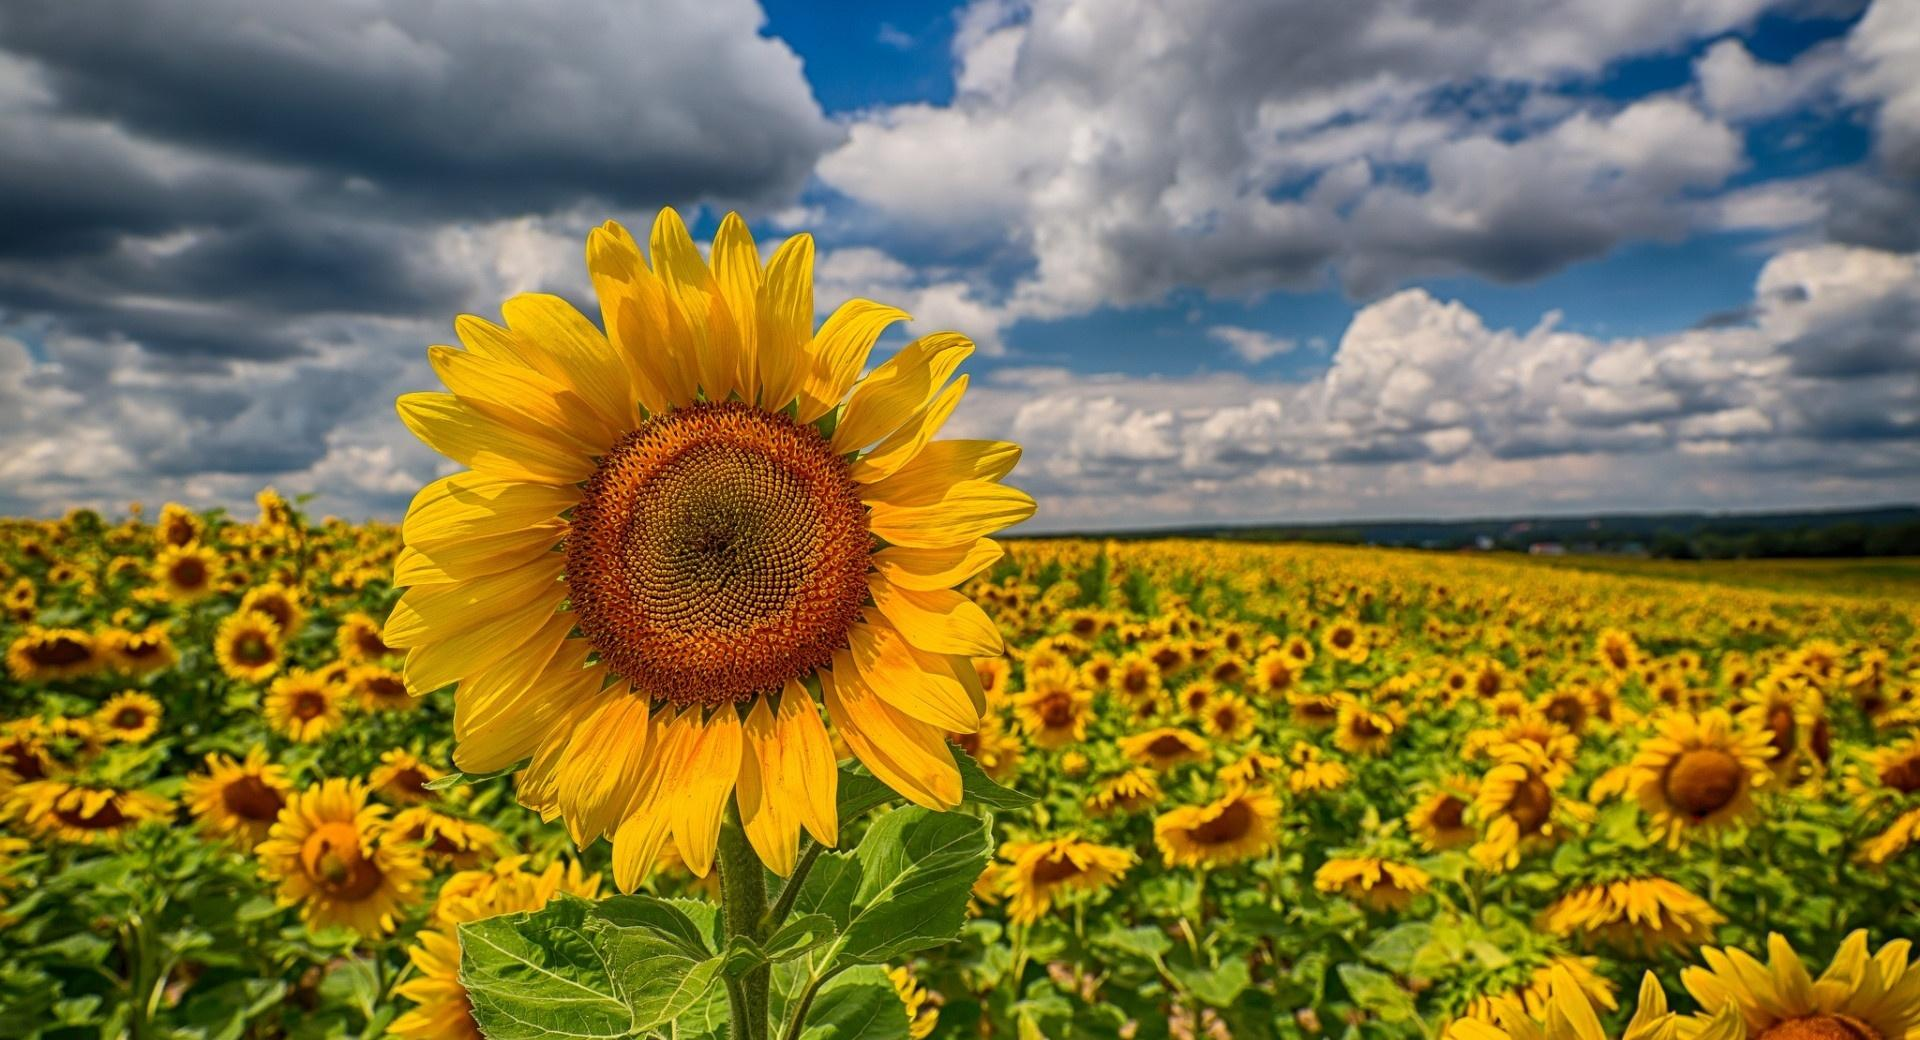 Big Sunflower In The Field wallpapers HD quality